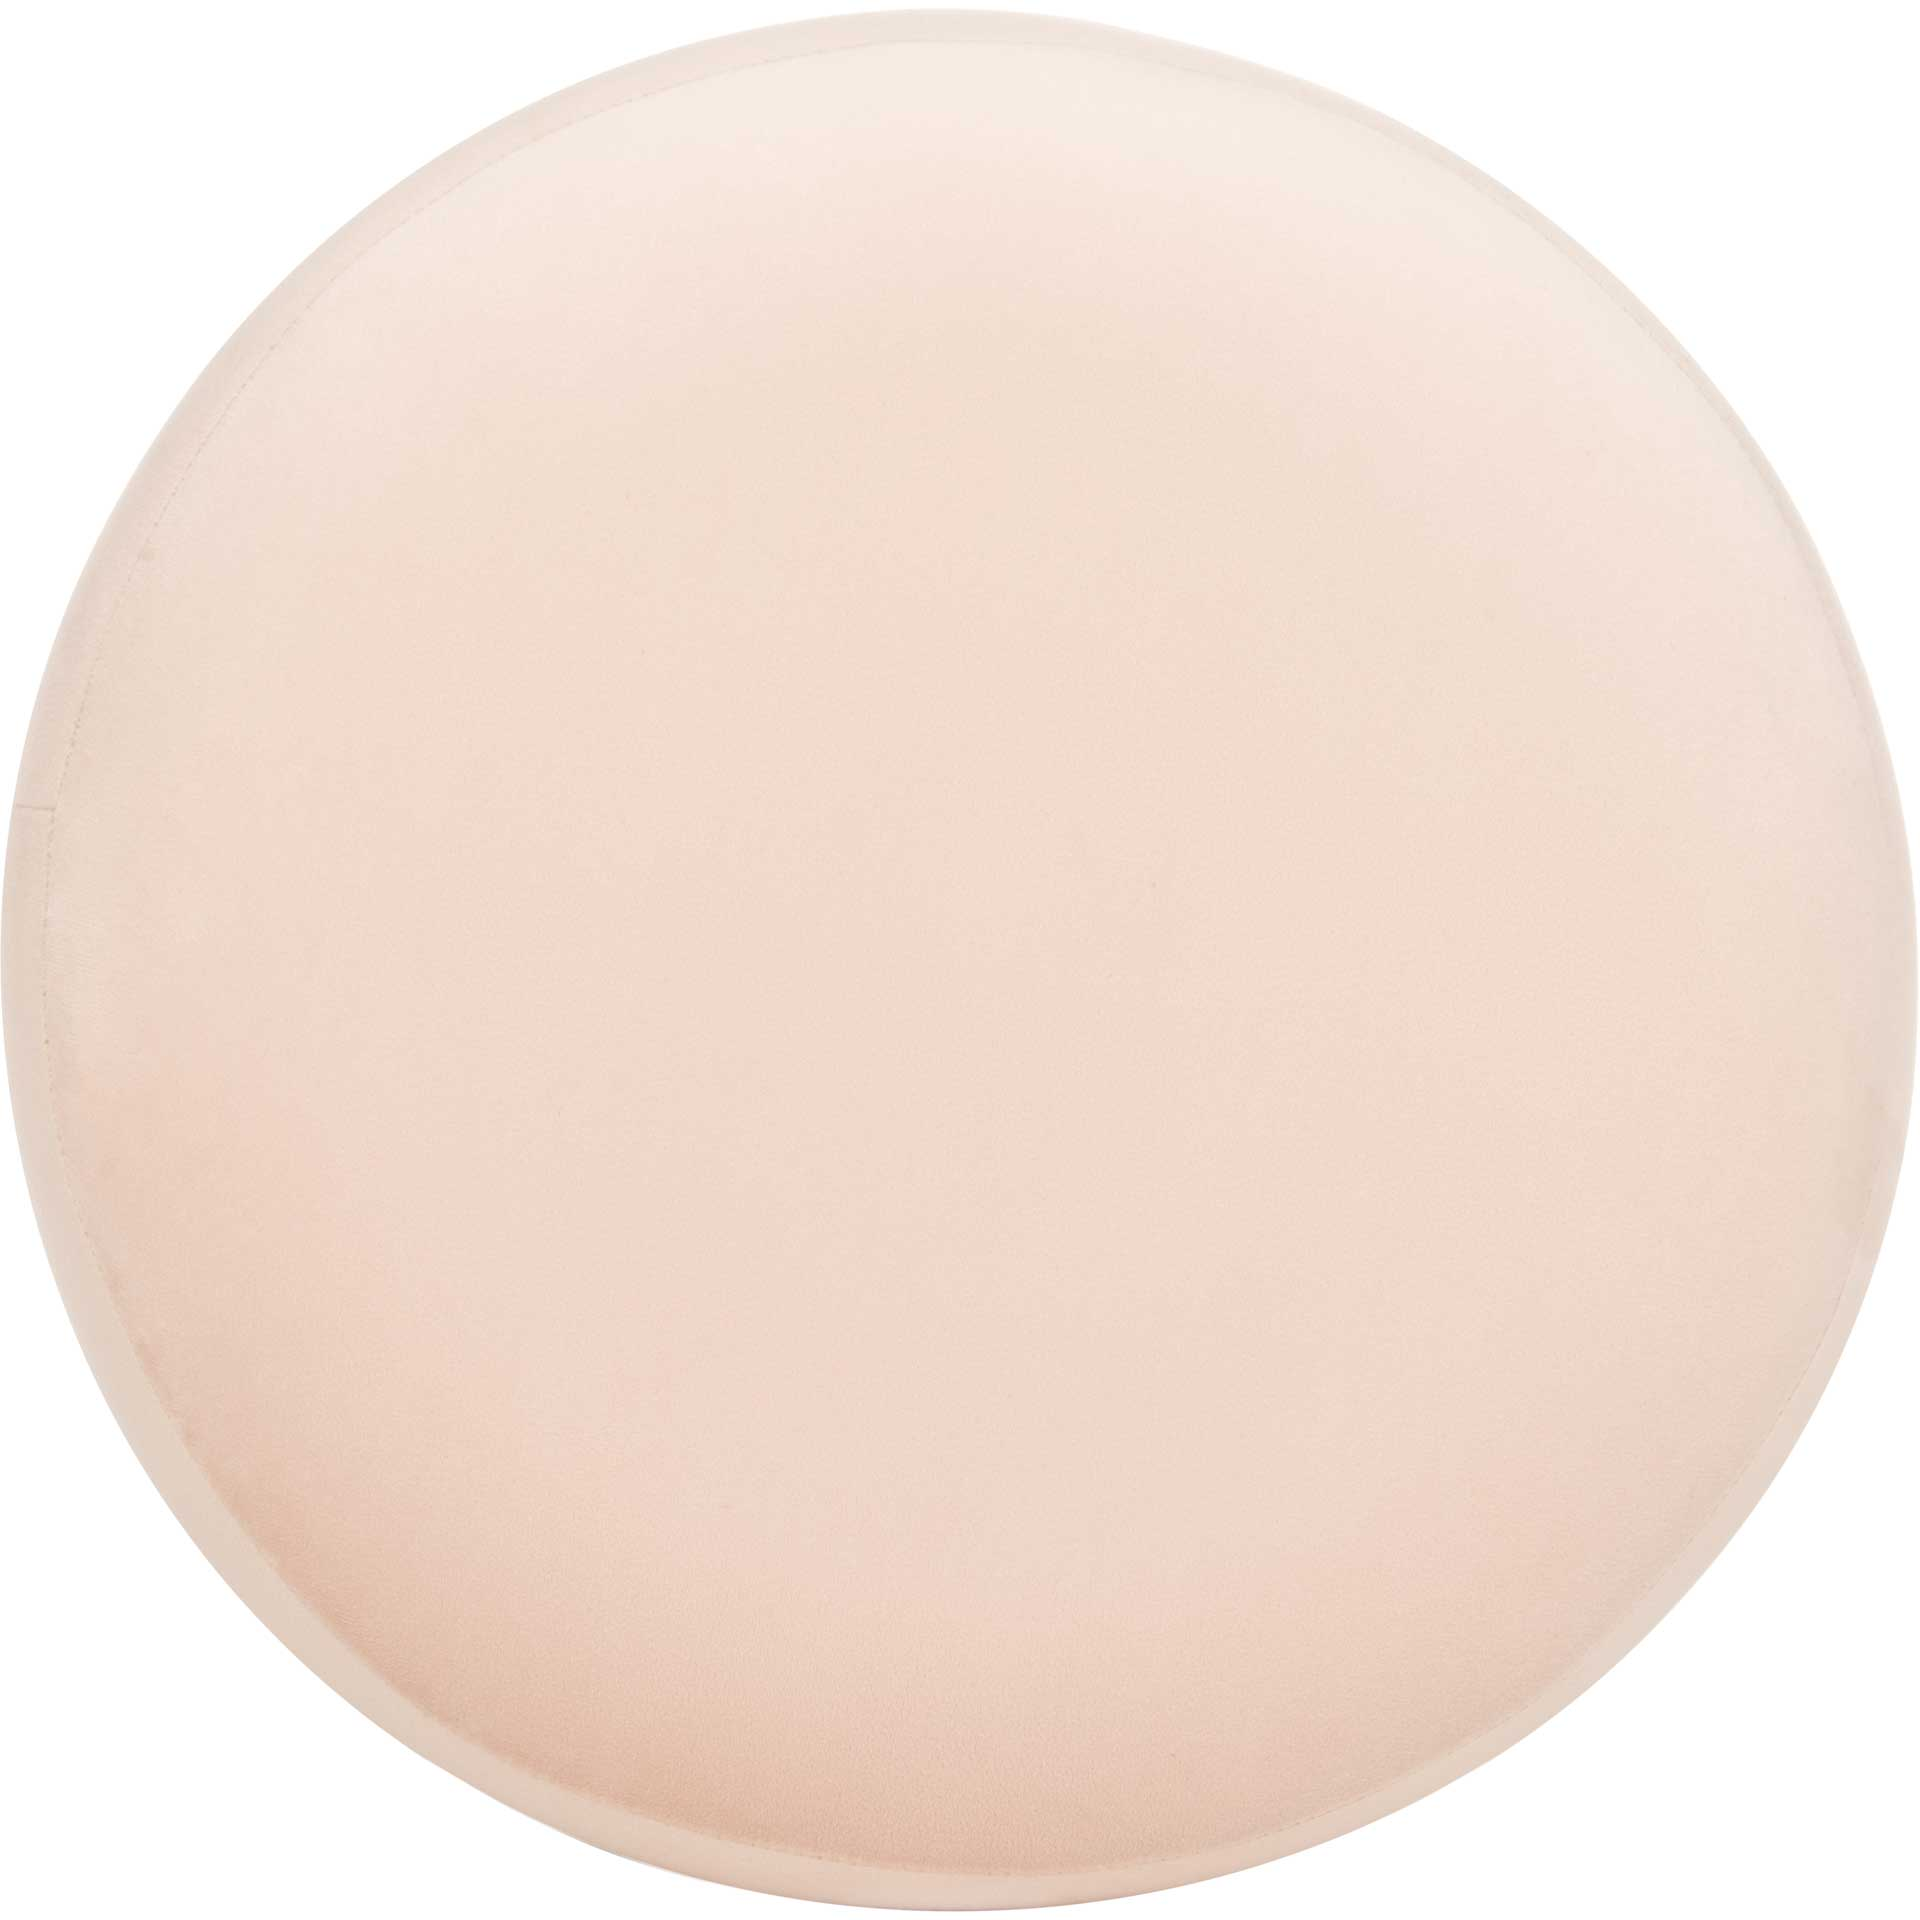 Skeat Gold Base Ottoman Light Pink